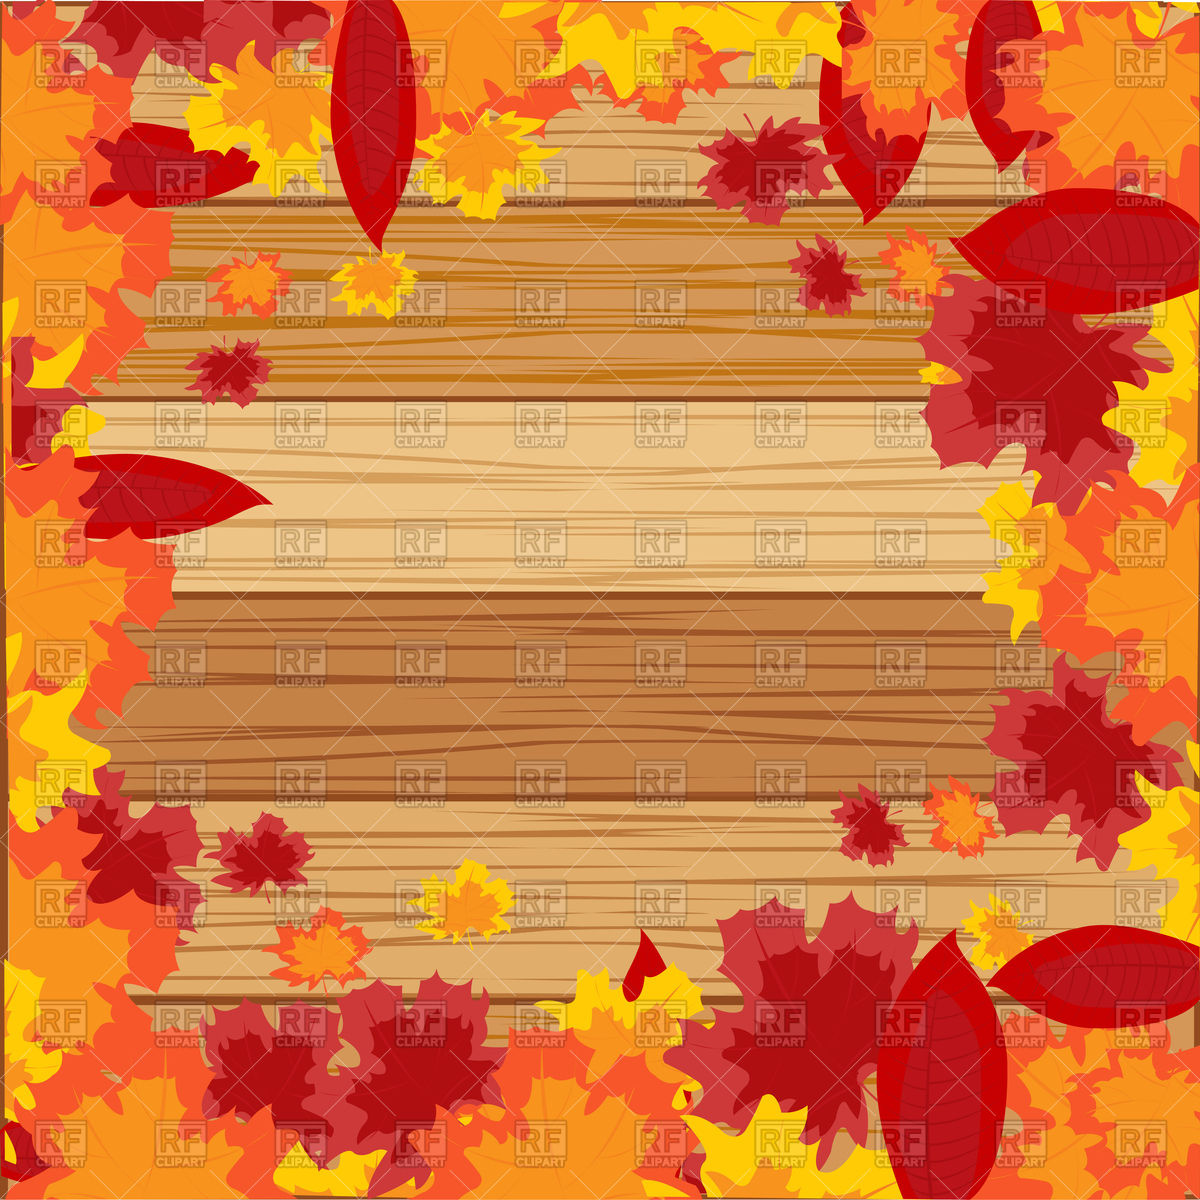 free fall background image clipart #11